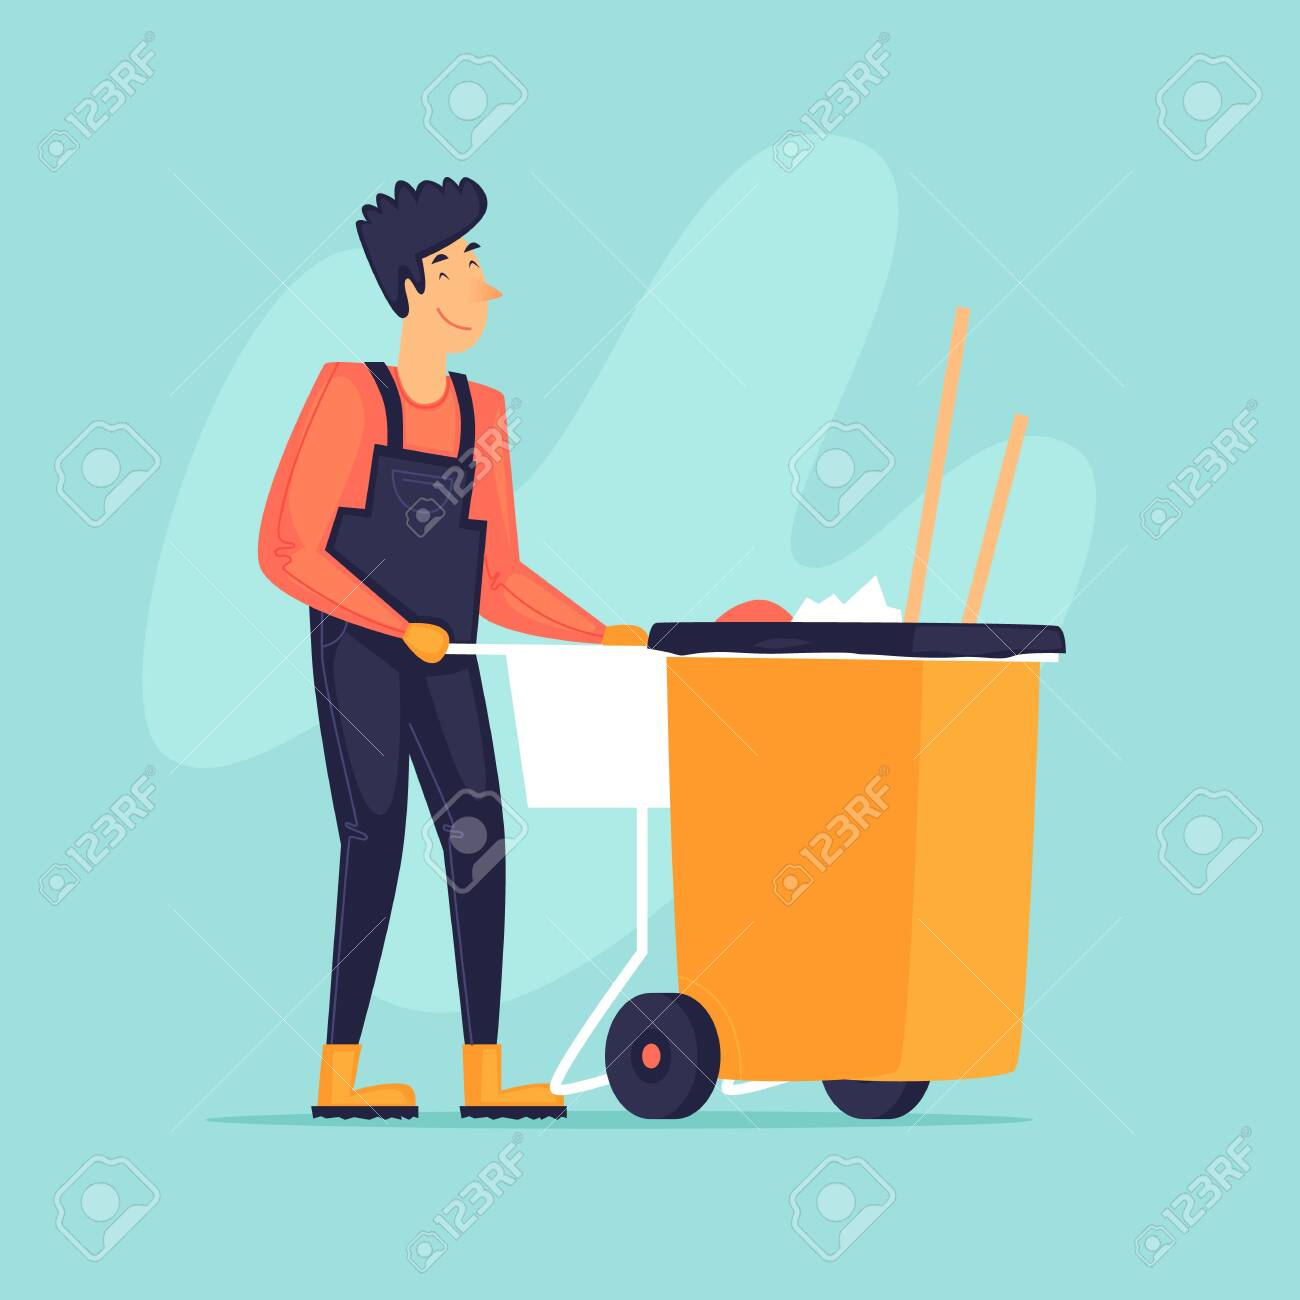 Street cleaning, a man drags a container, a cleaner. Flat design vector illustration. - 142938679